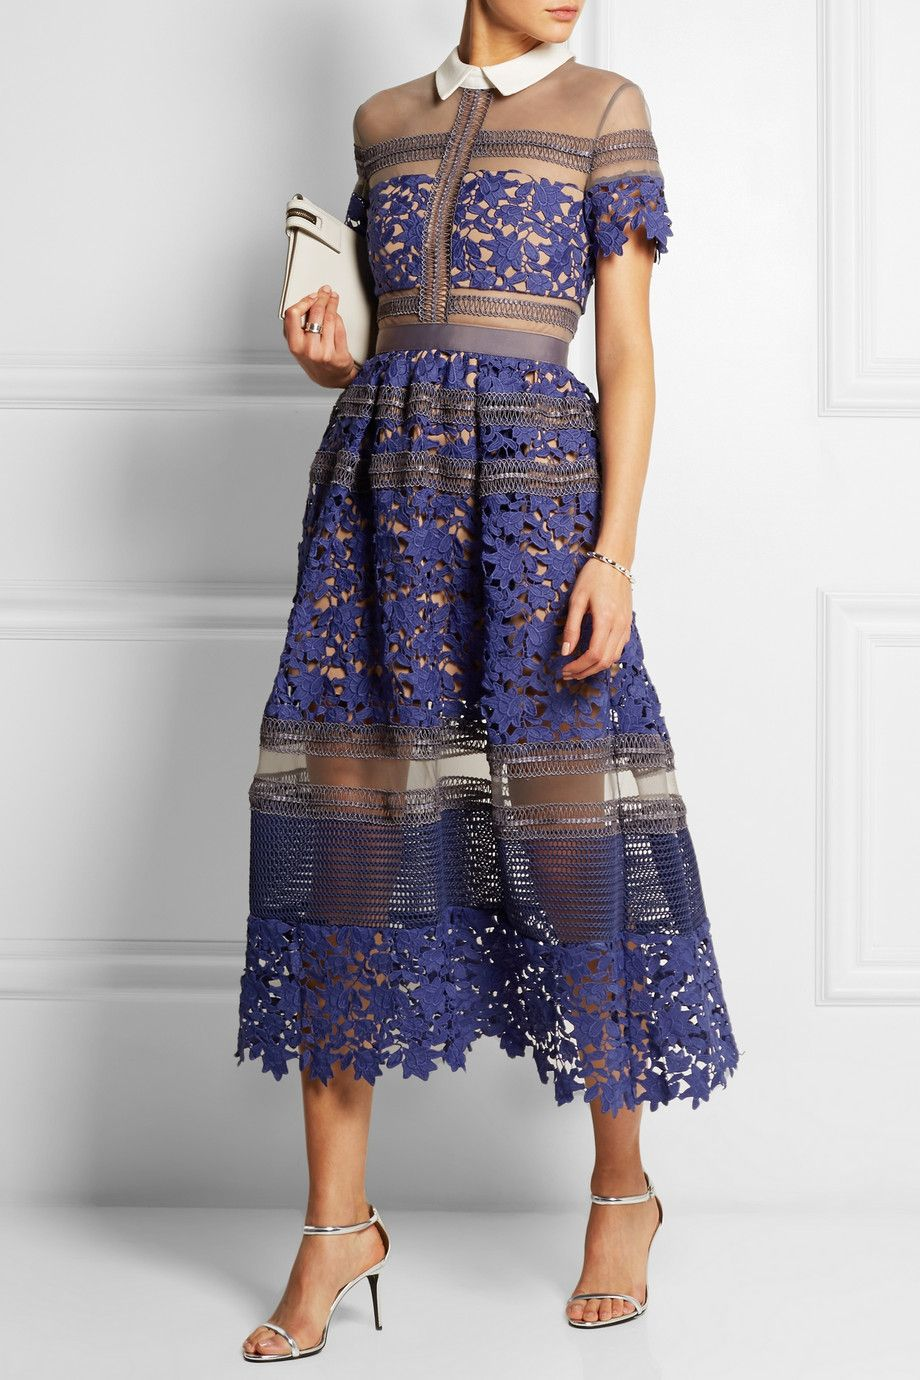 Liliana paneled floral-lace and mesh dress | derby day | Pinterest ...